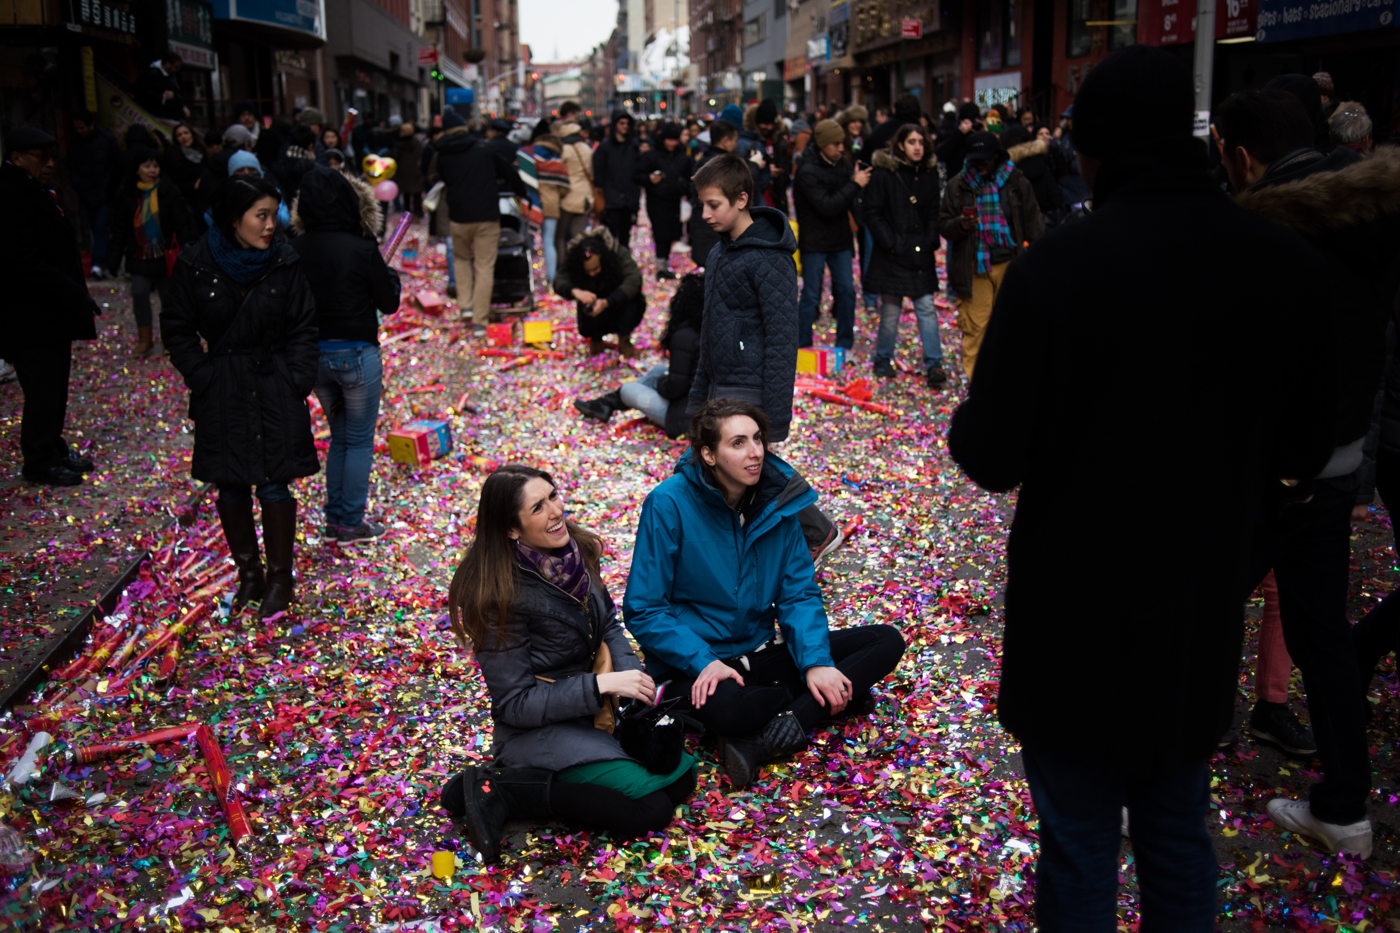 People sit in a street filled with confetti during the Chinese New Year Parade in the Chinatown neighborhood of New York.